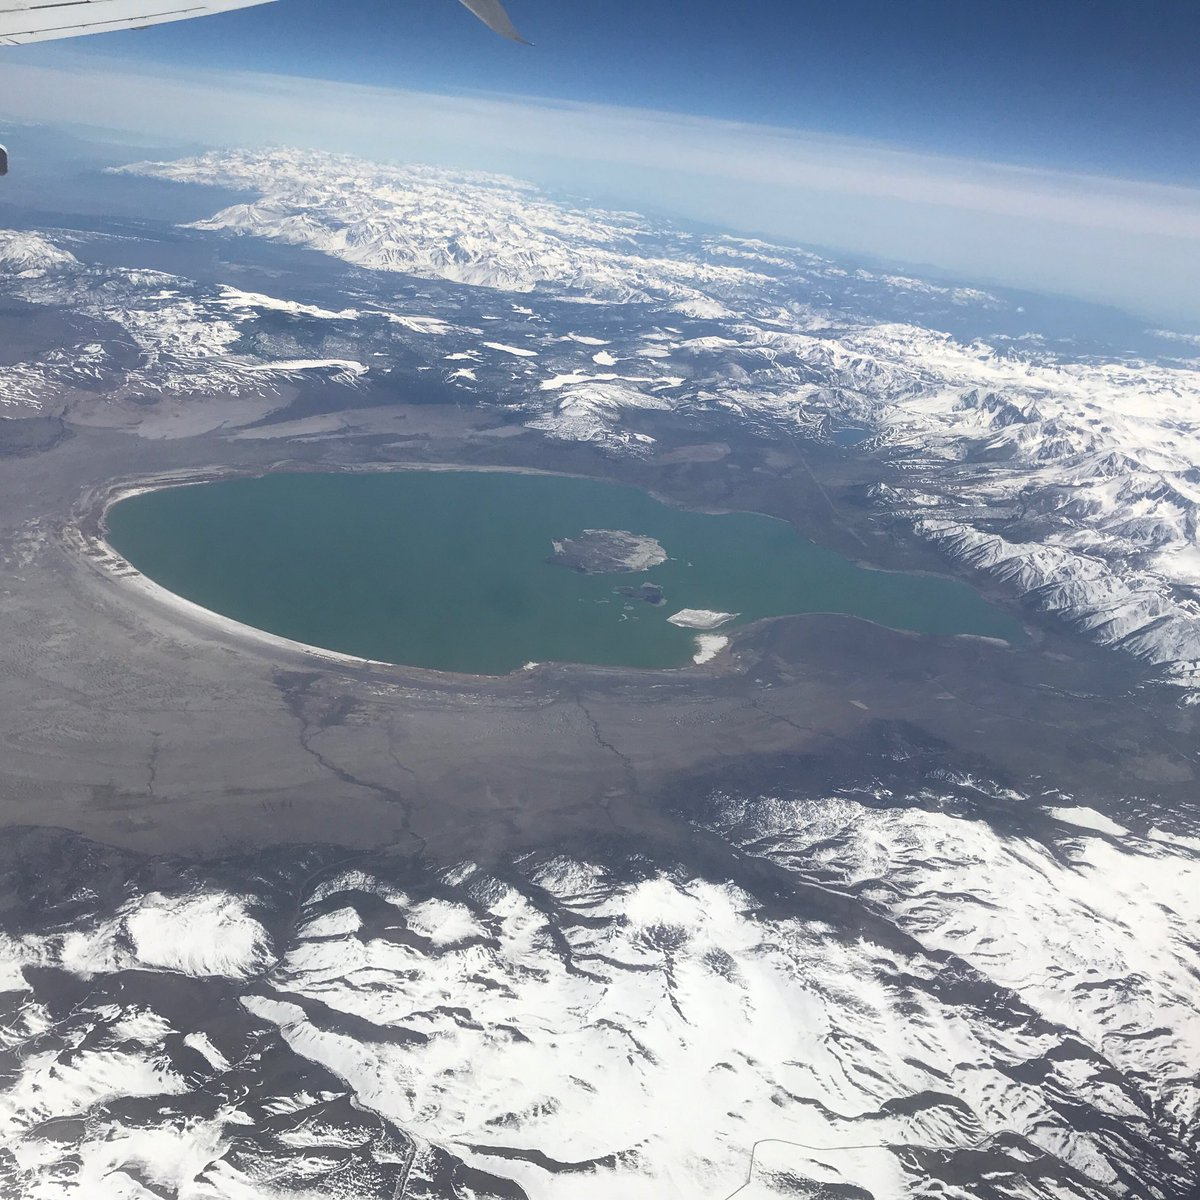 Mono Lake from 35,000 ft https://t.co/IE4UFmfuDG